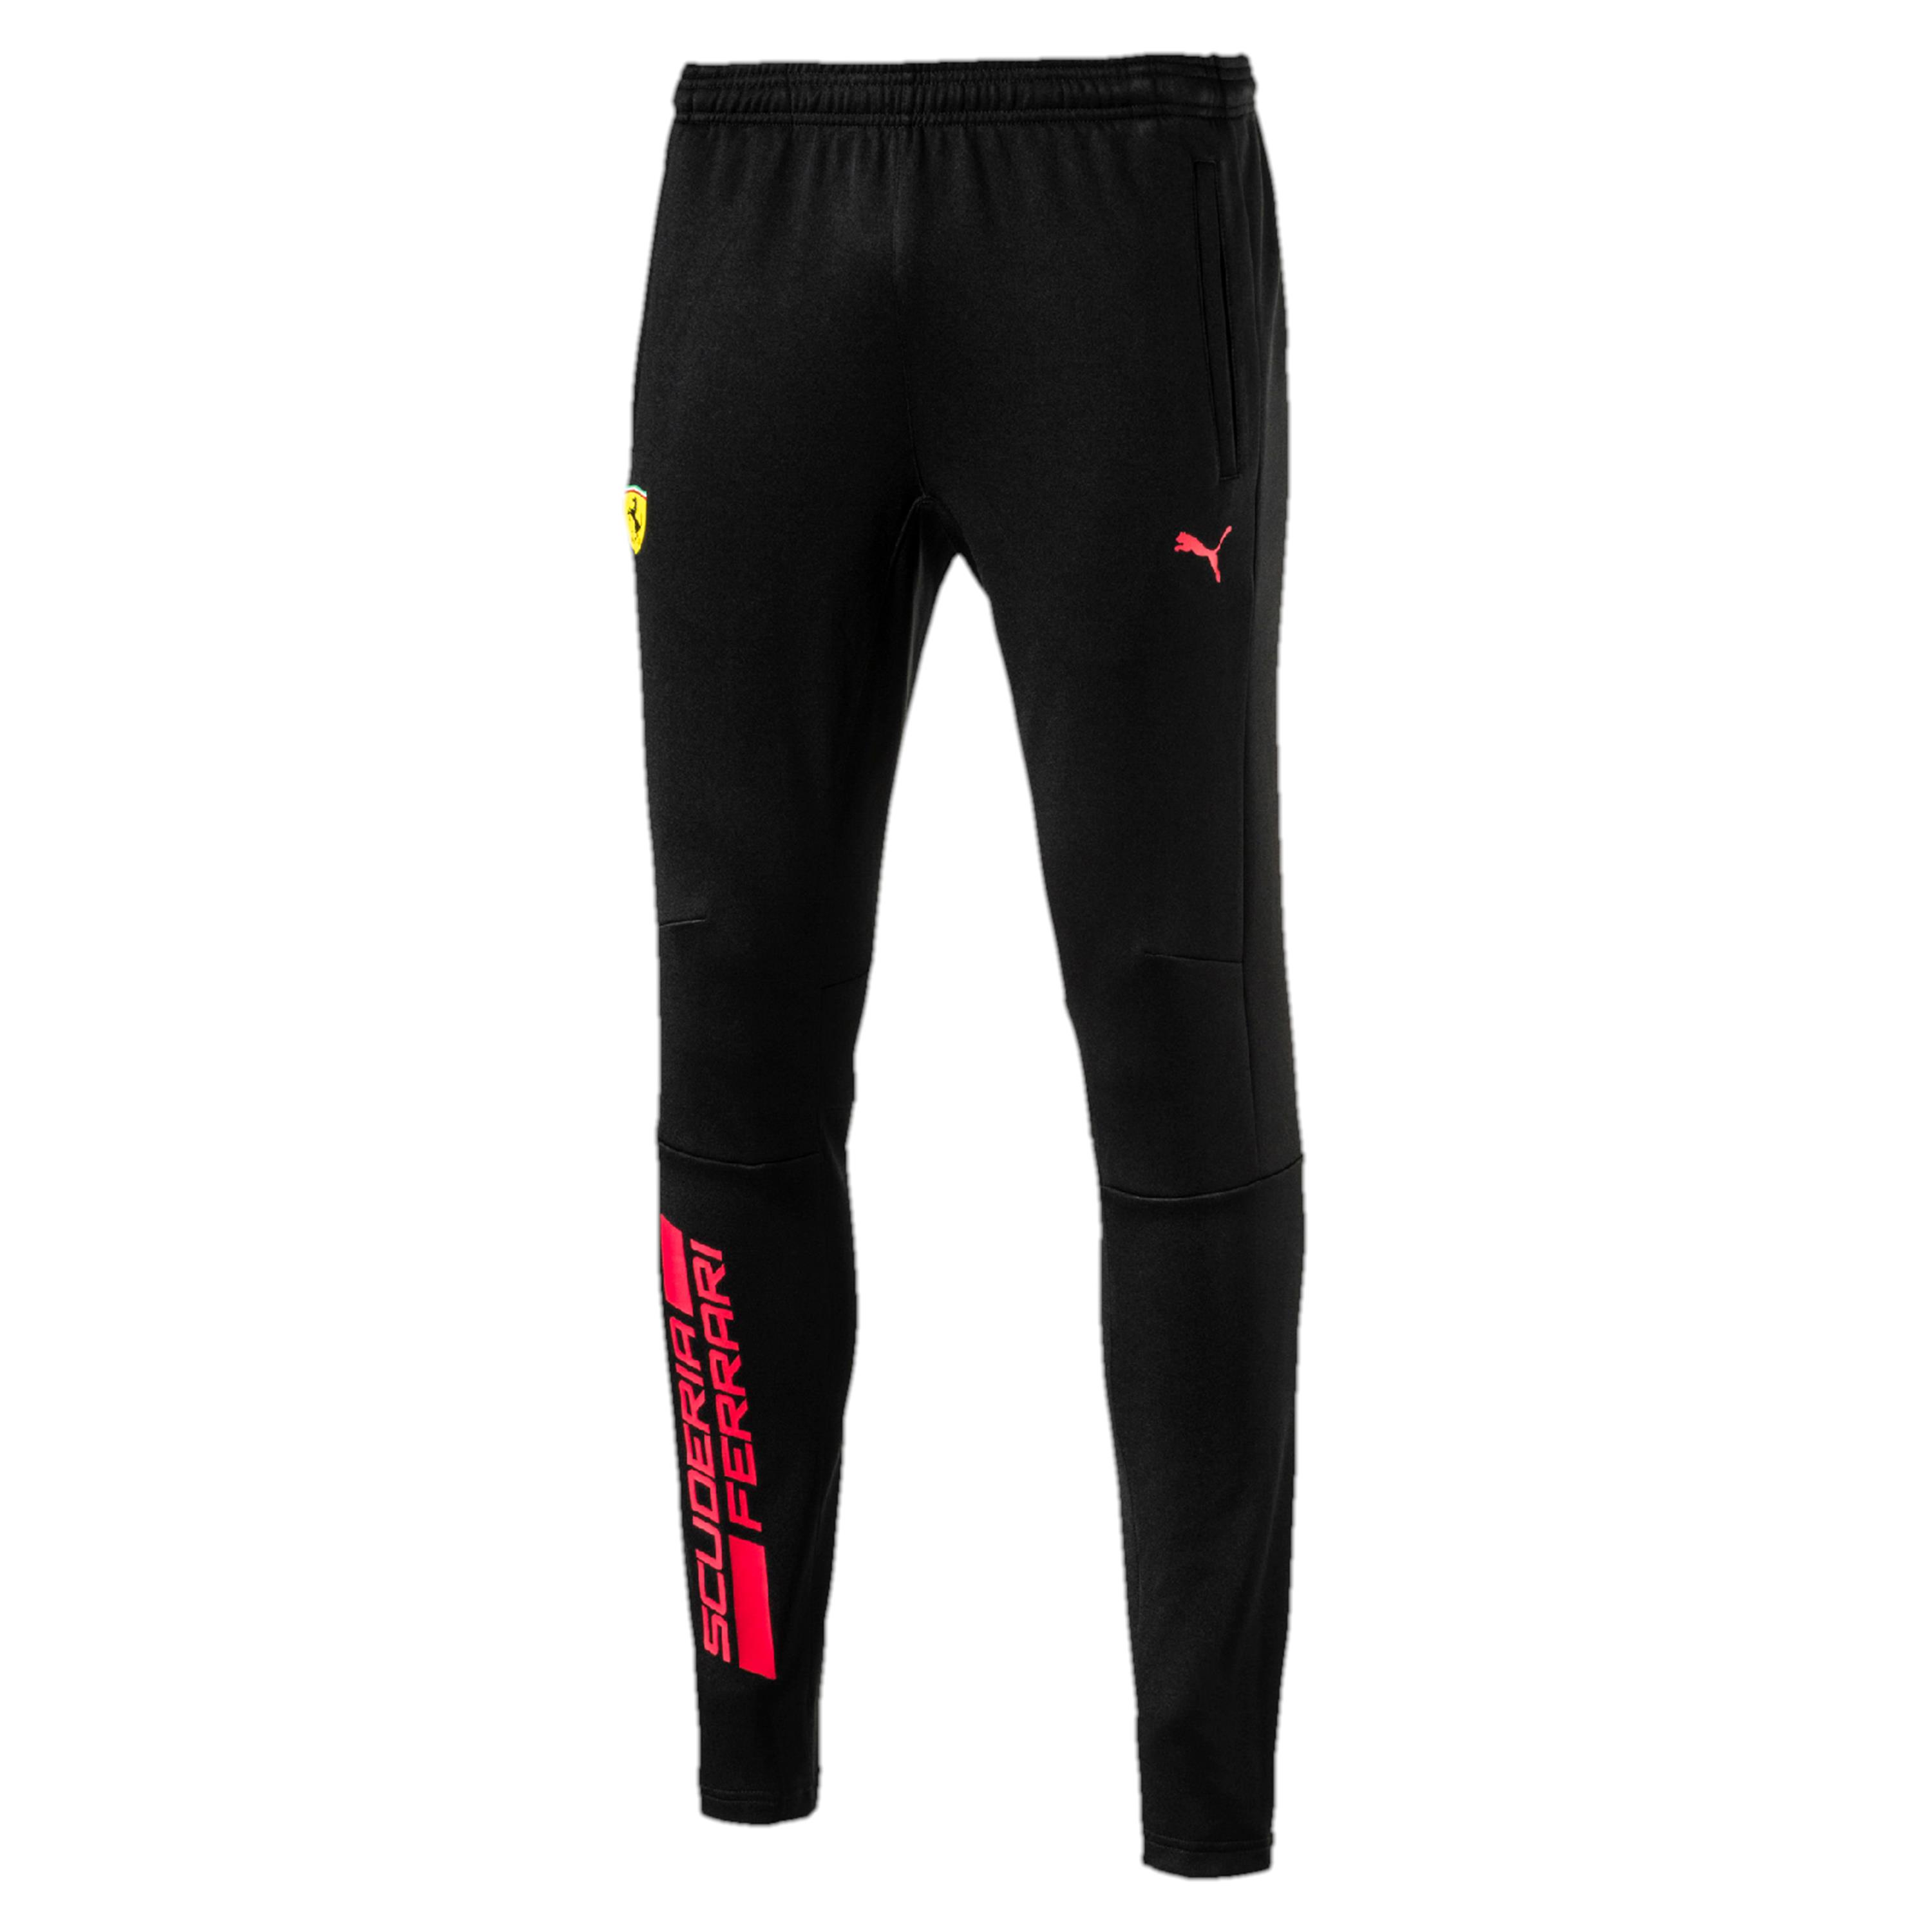 SF Track Pants Puma Black